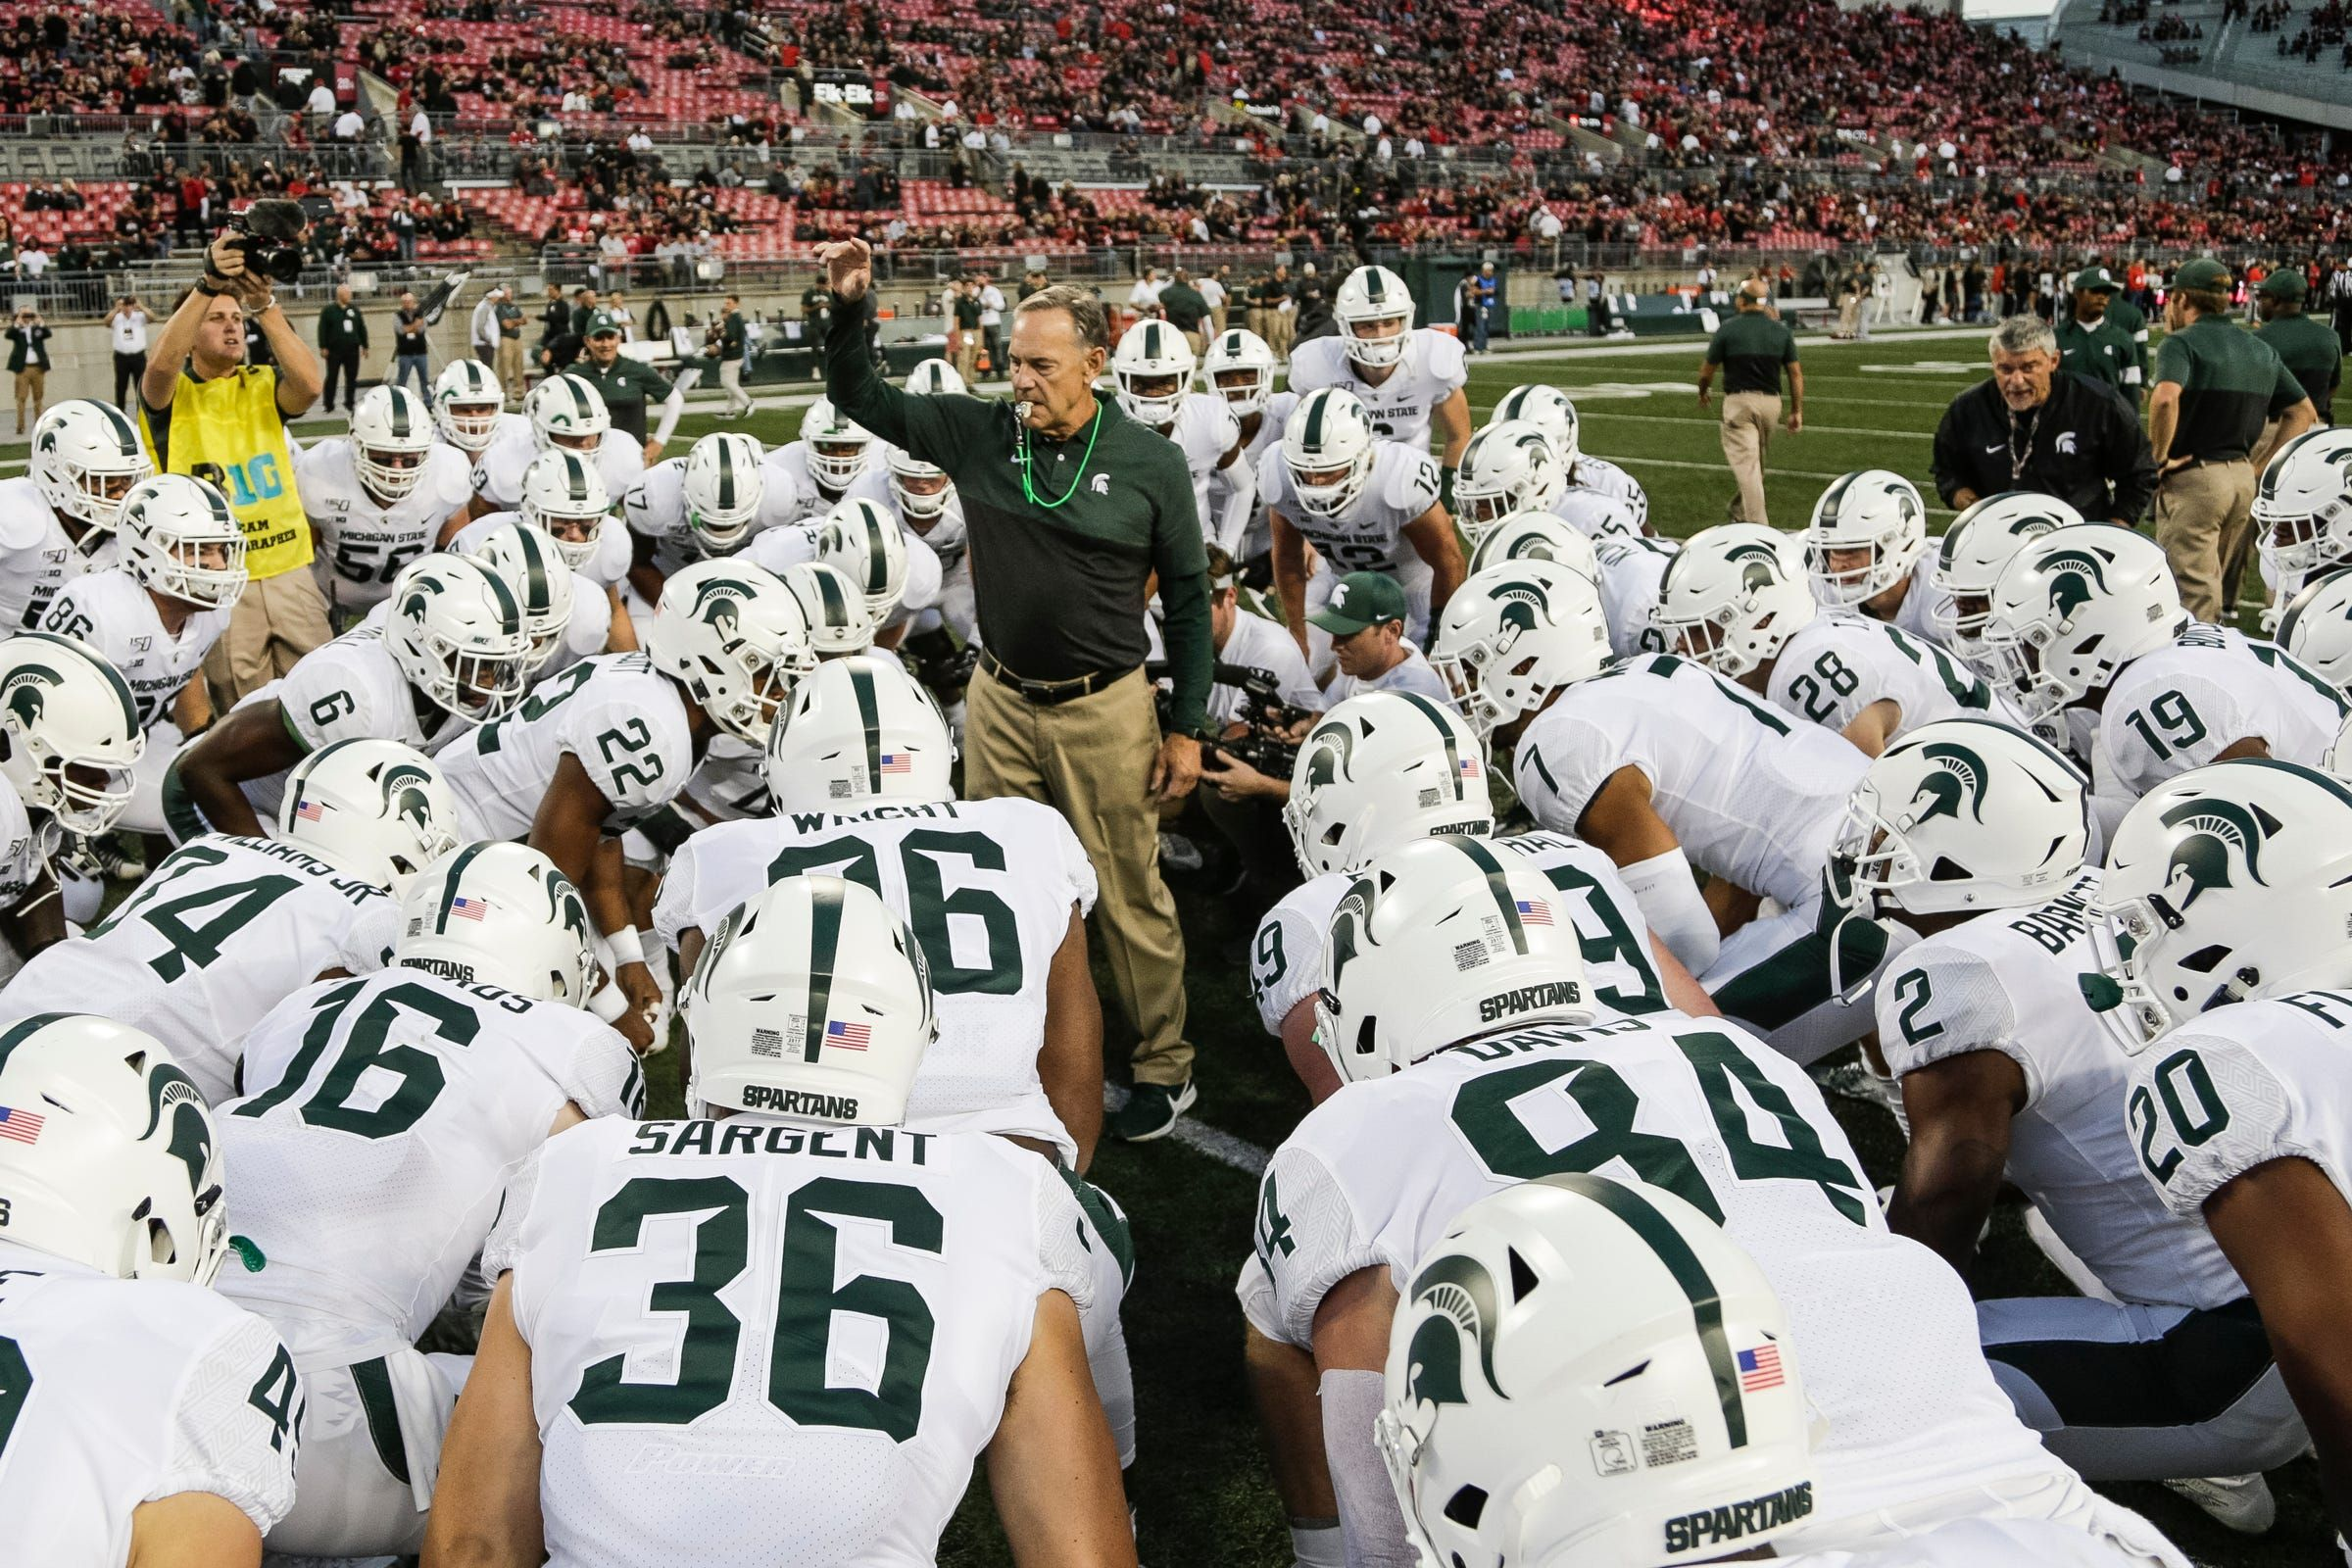 Michigan State News Conference Recap Expecting A Physical One Vs